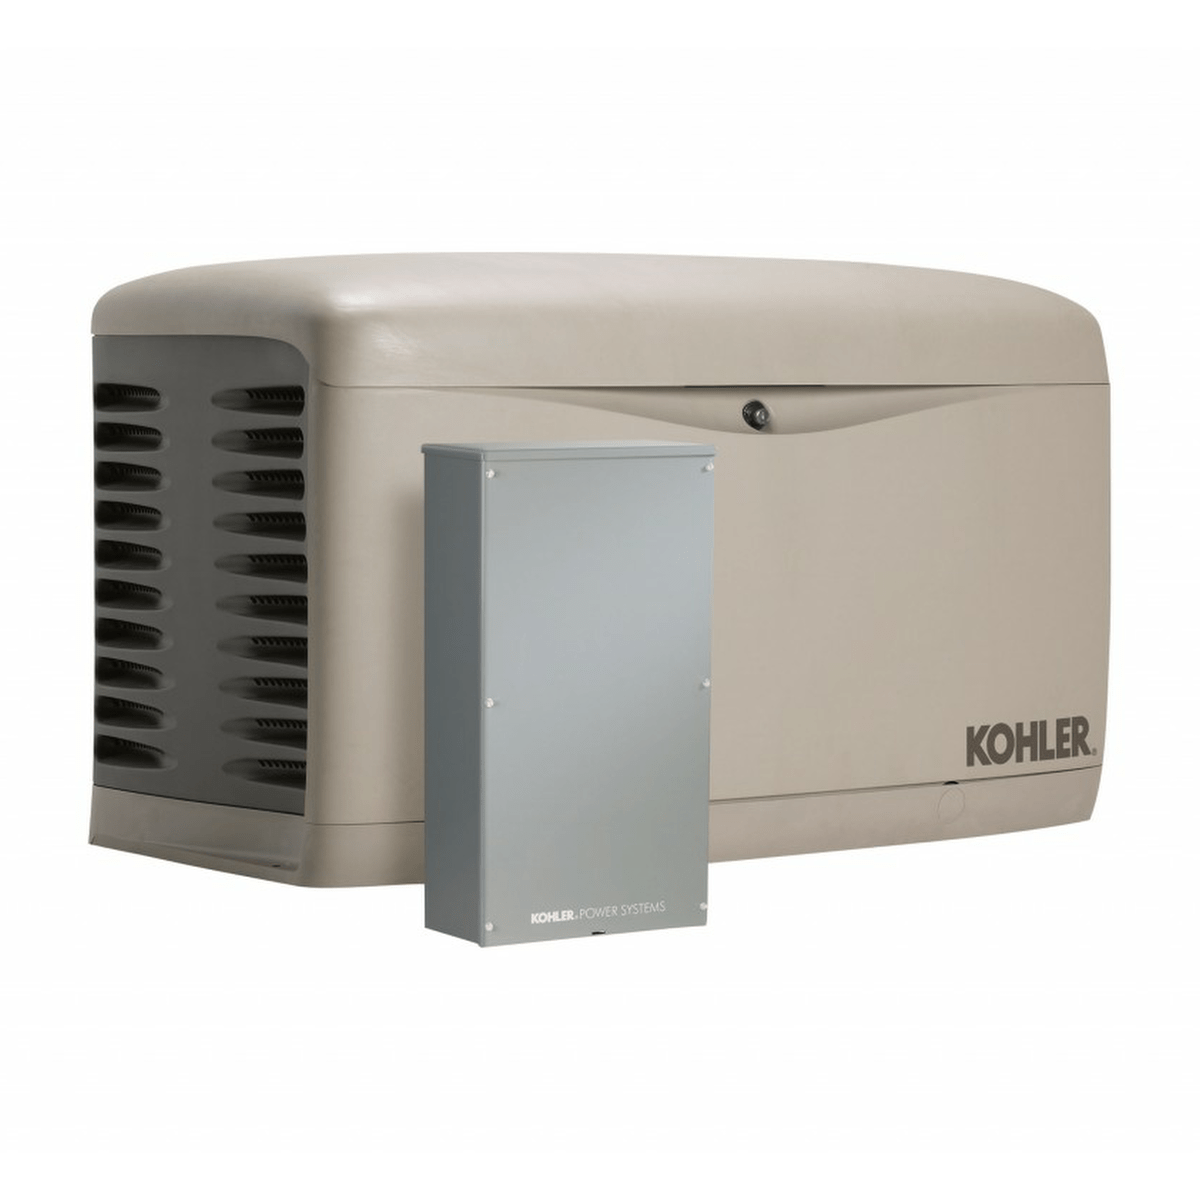 hight resolution of kohler 20resal 100lc16 20kw generator with 100a 16 circuit transfer switch